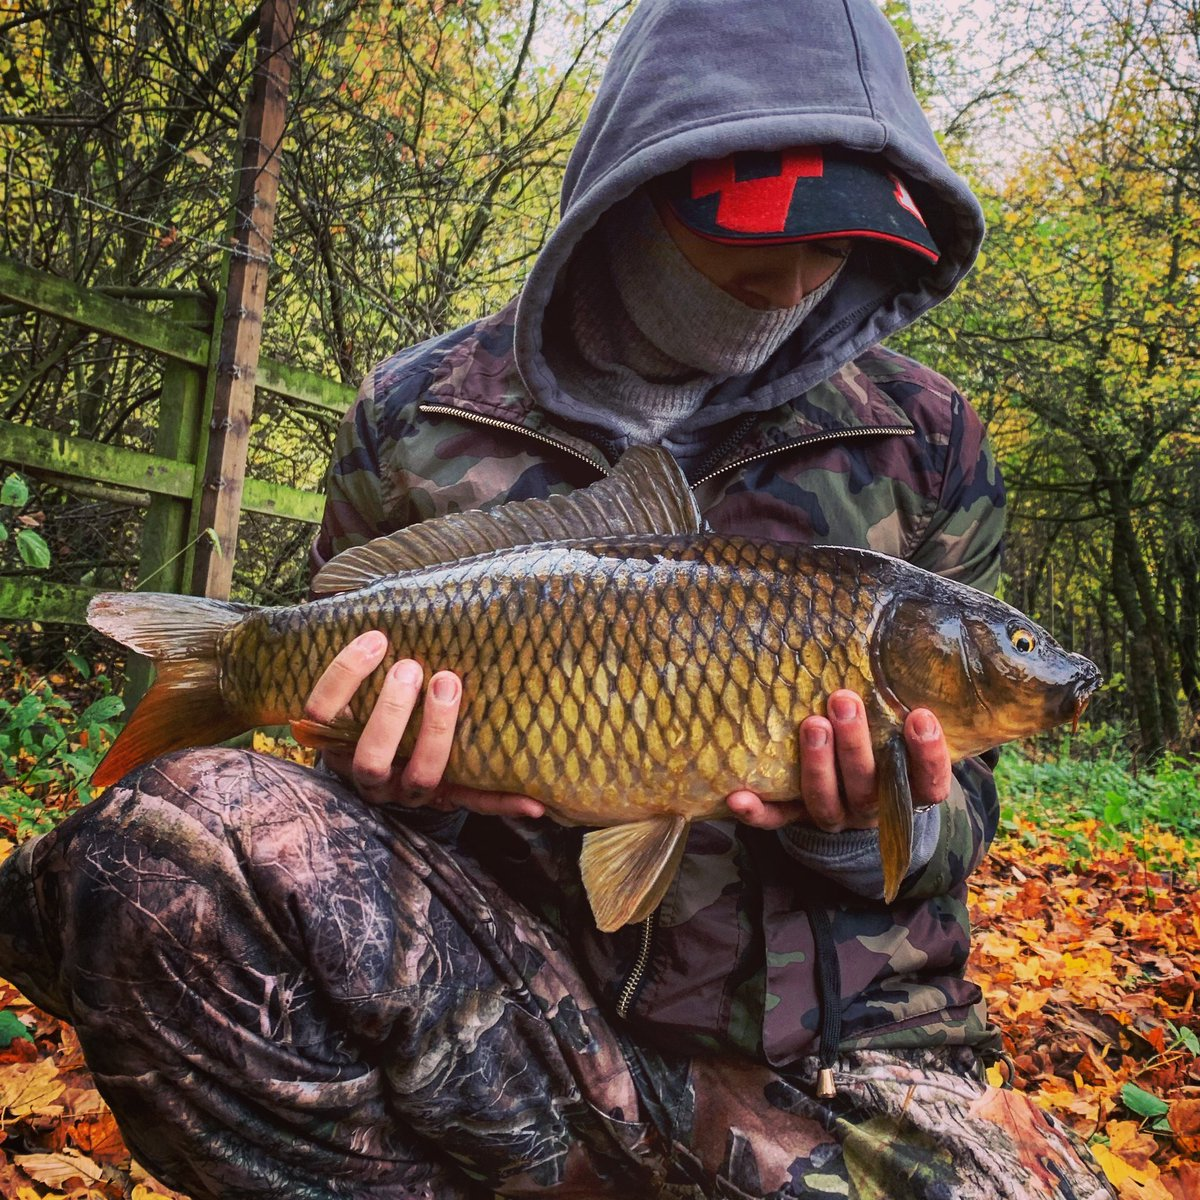 Nice little common with autumnal scenes #carpy #carp #korda #carpfishing #fishing @MainlineBaits @Ko